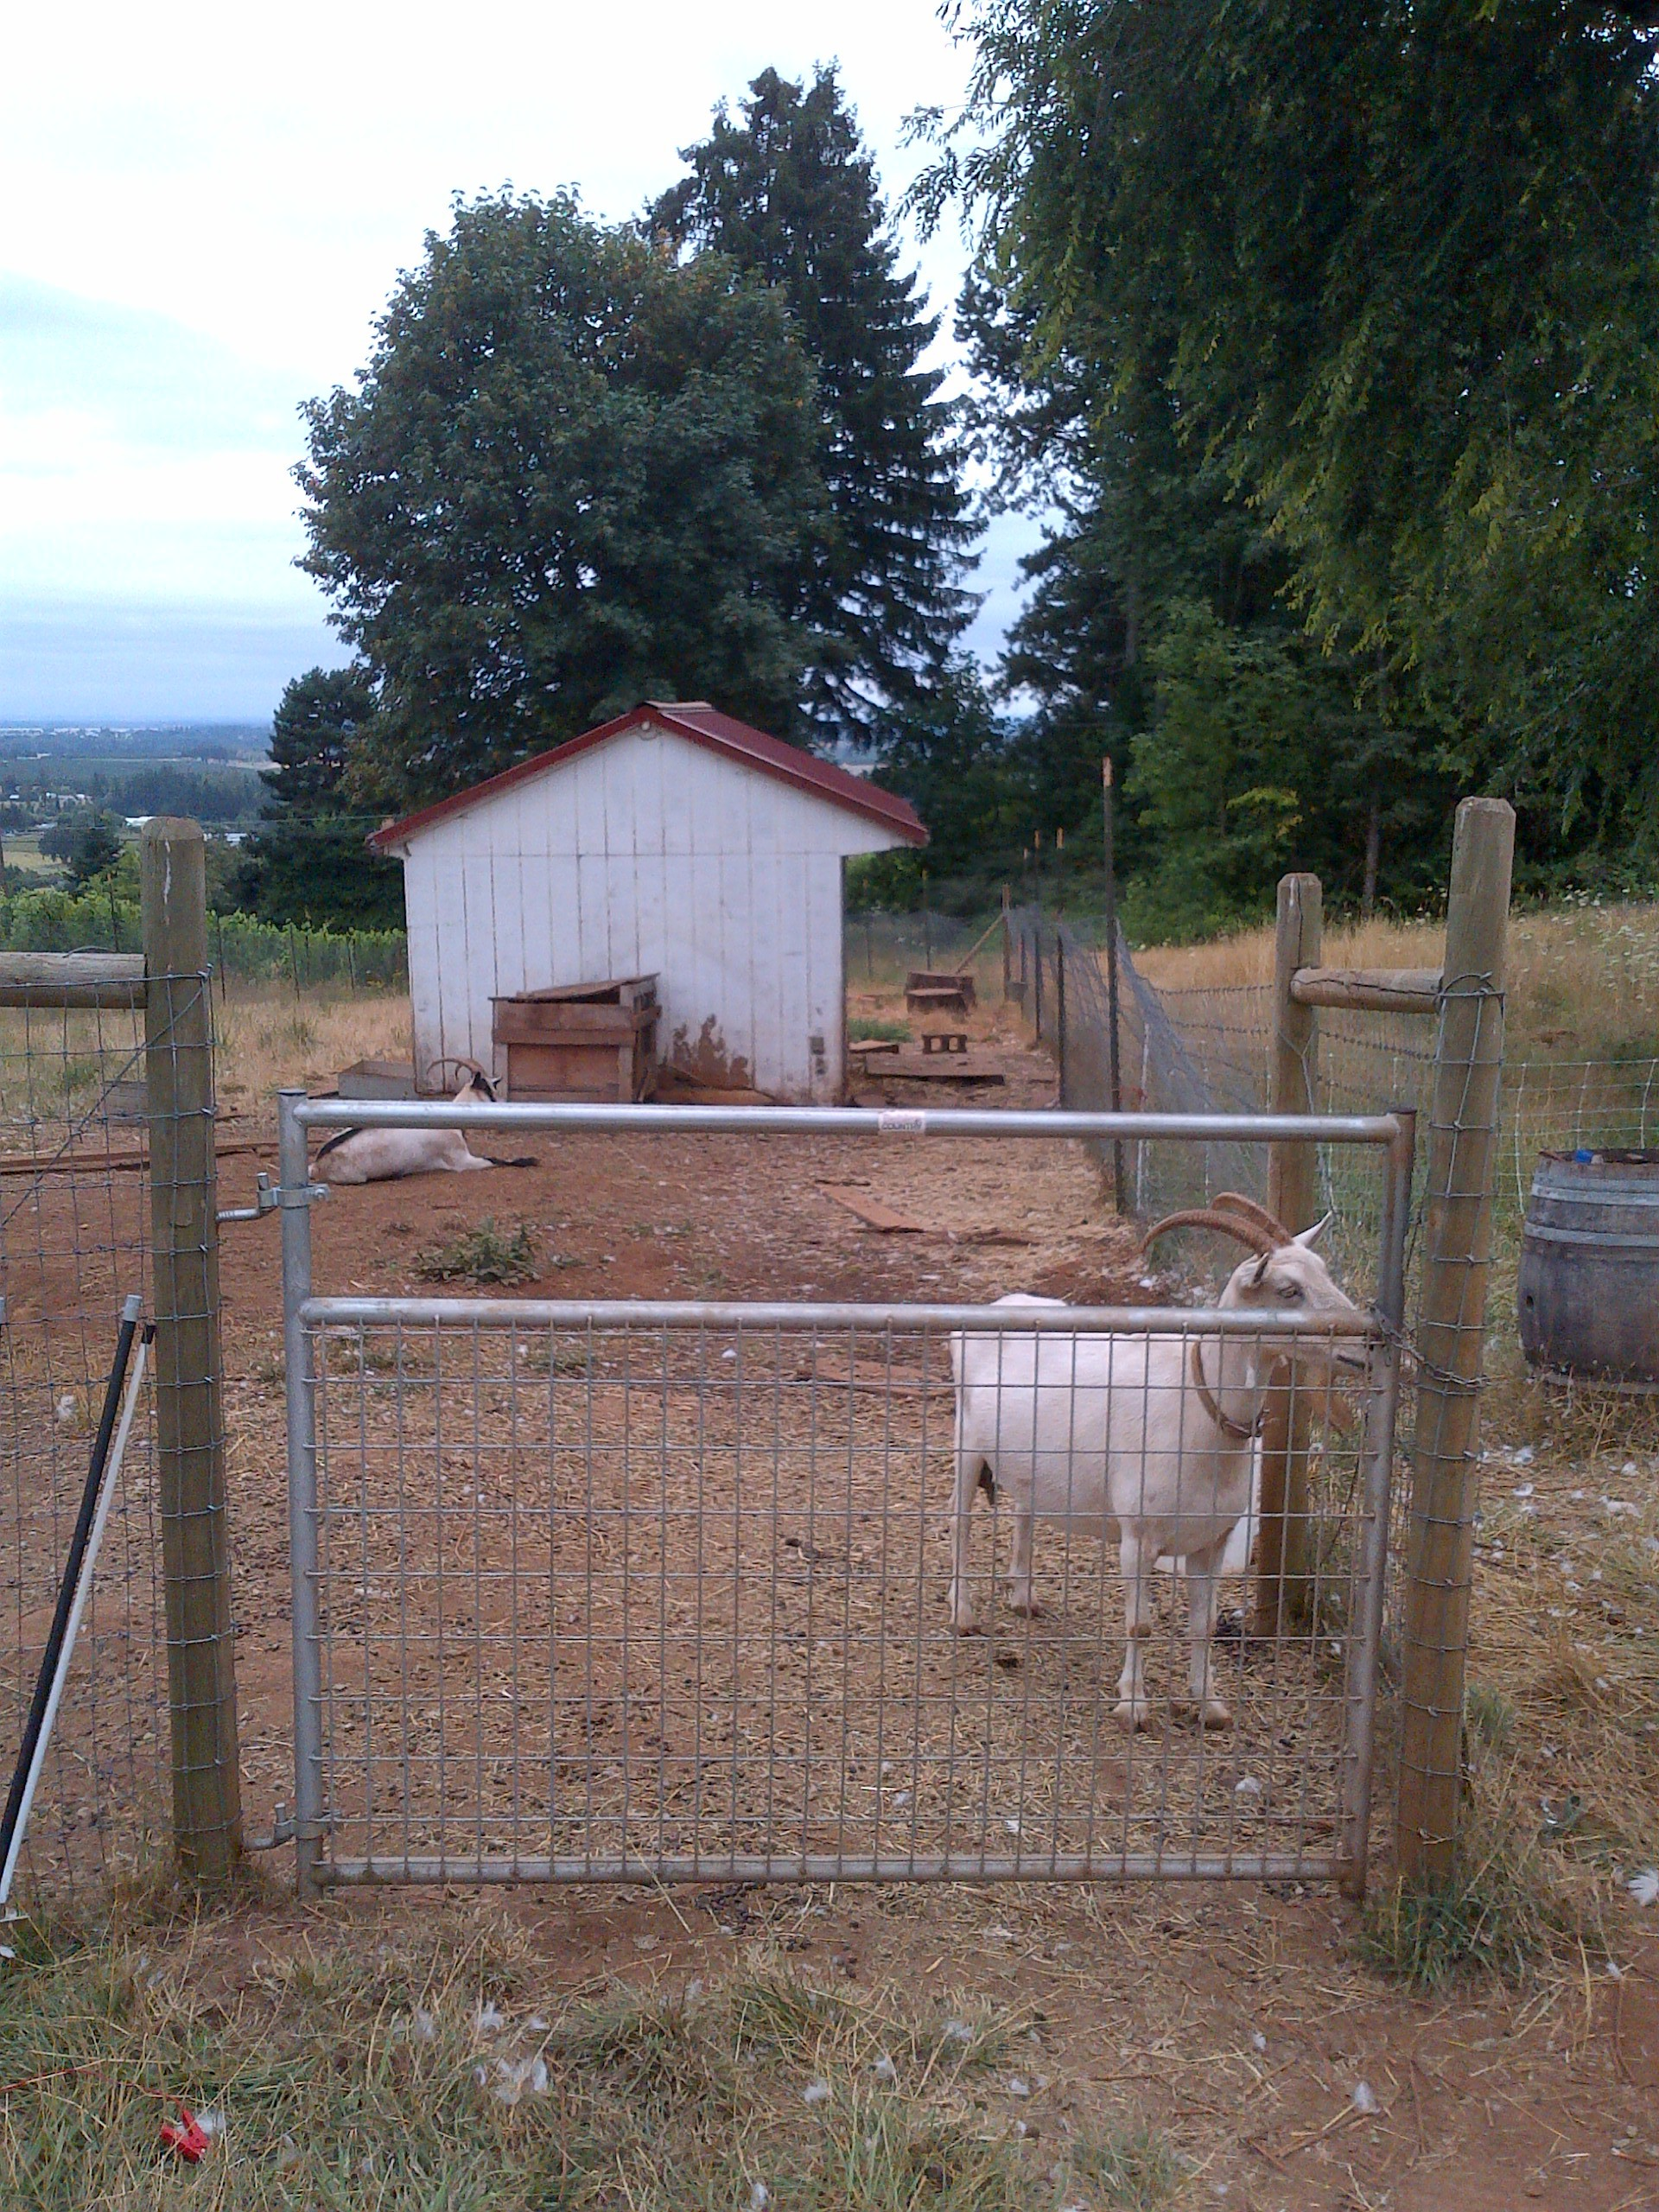 Cameron winery goats...